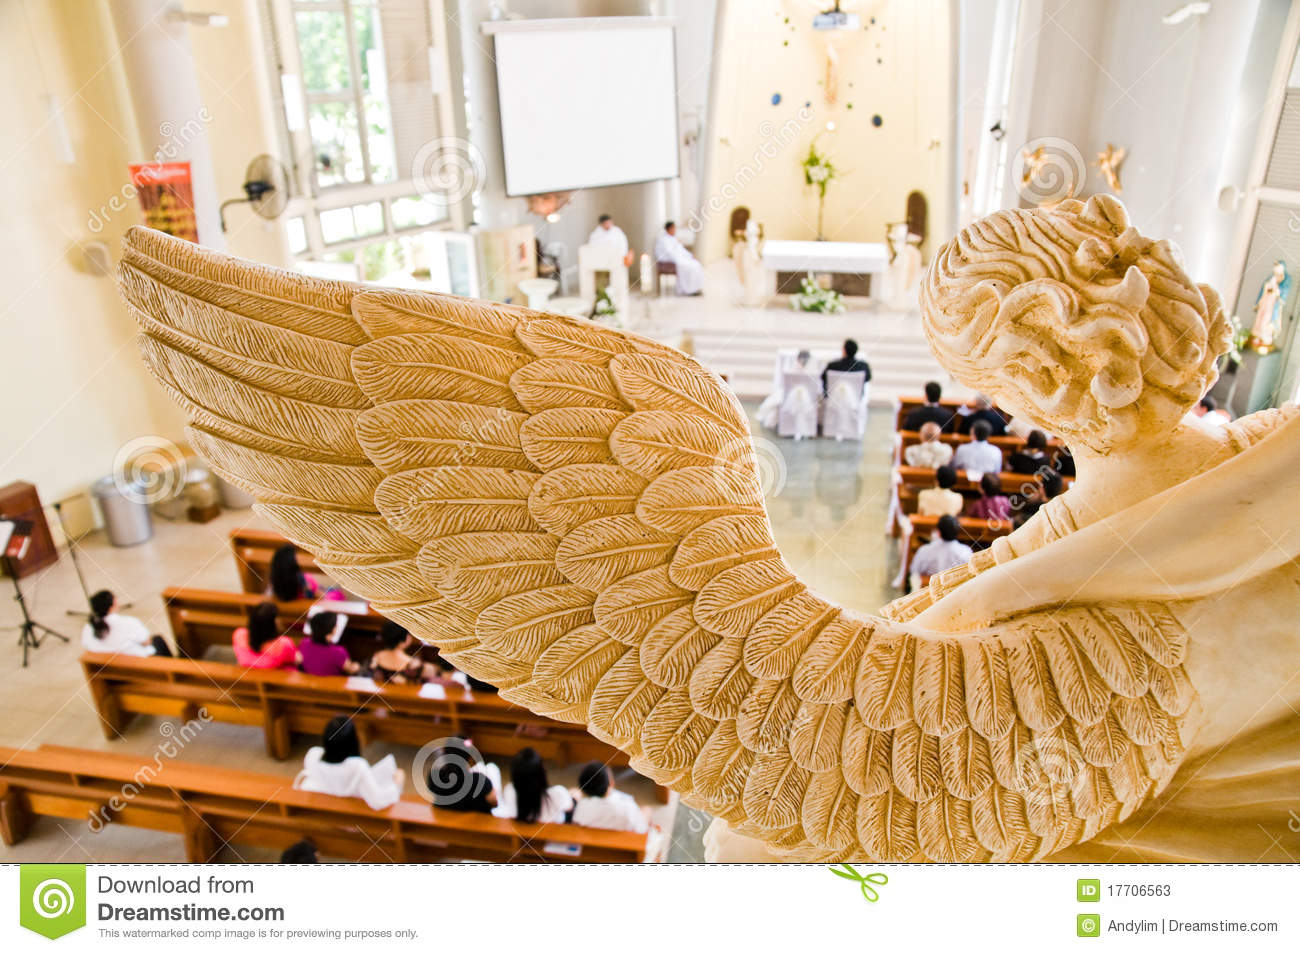 Stone statue of angel overlooking wedding ceremony